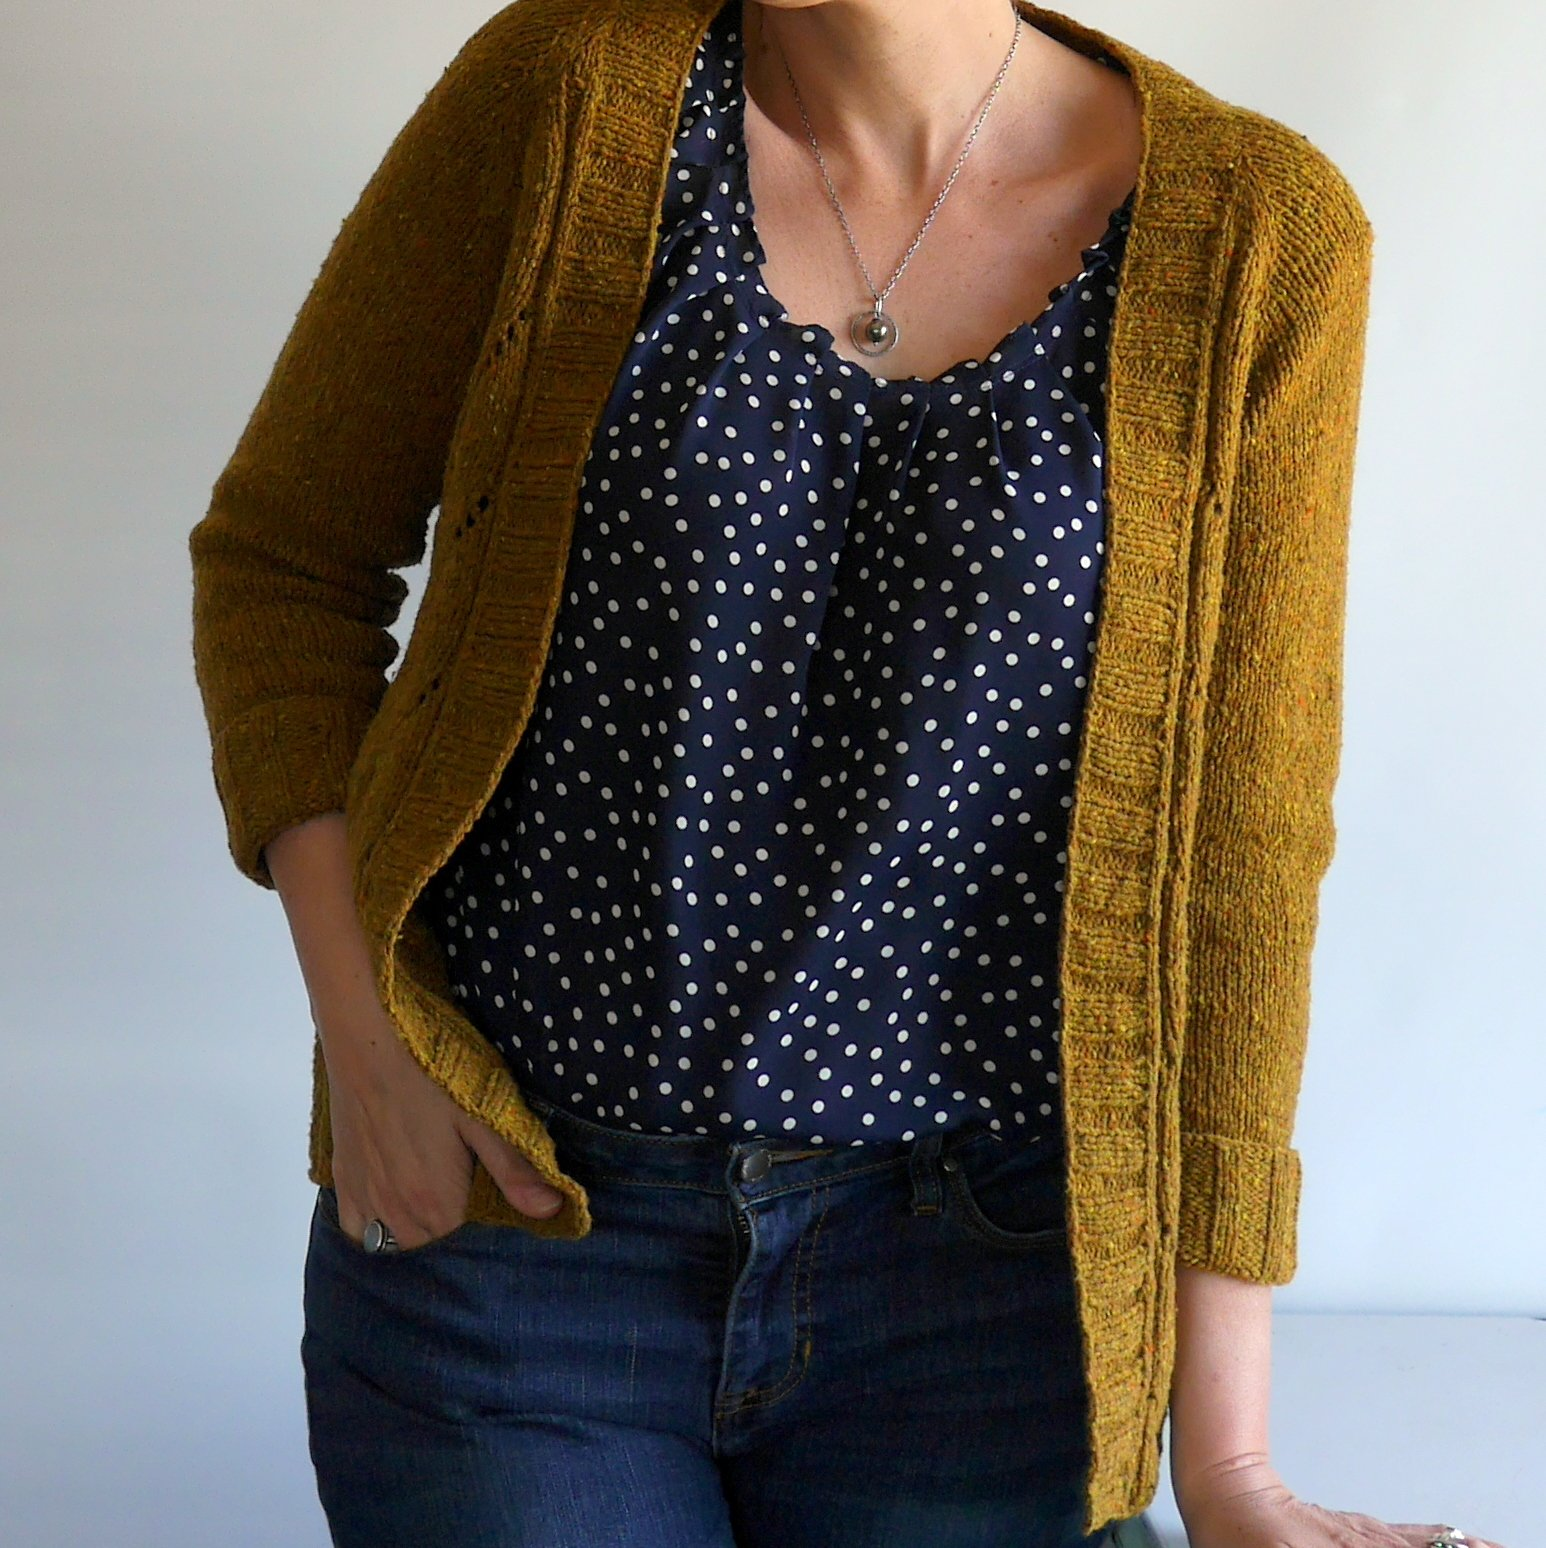 Stillwater by Marie Greene, Olive Knits